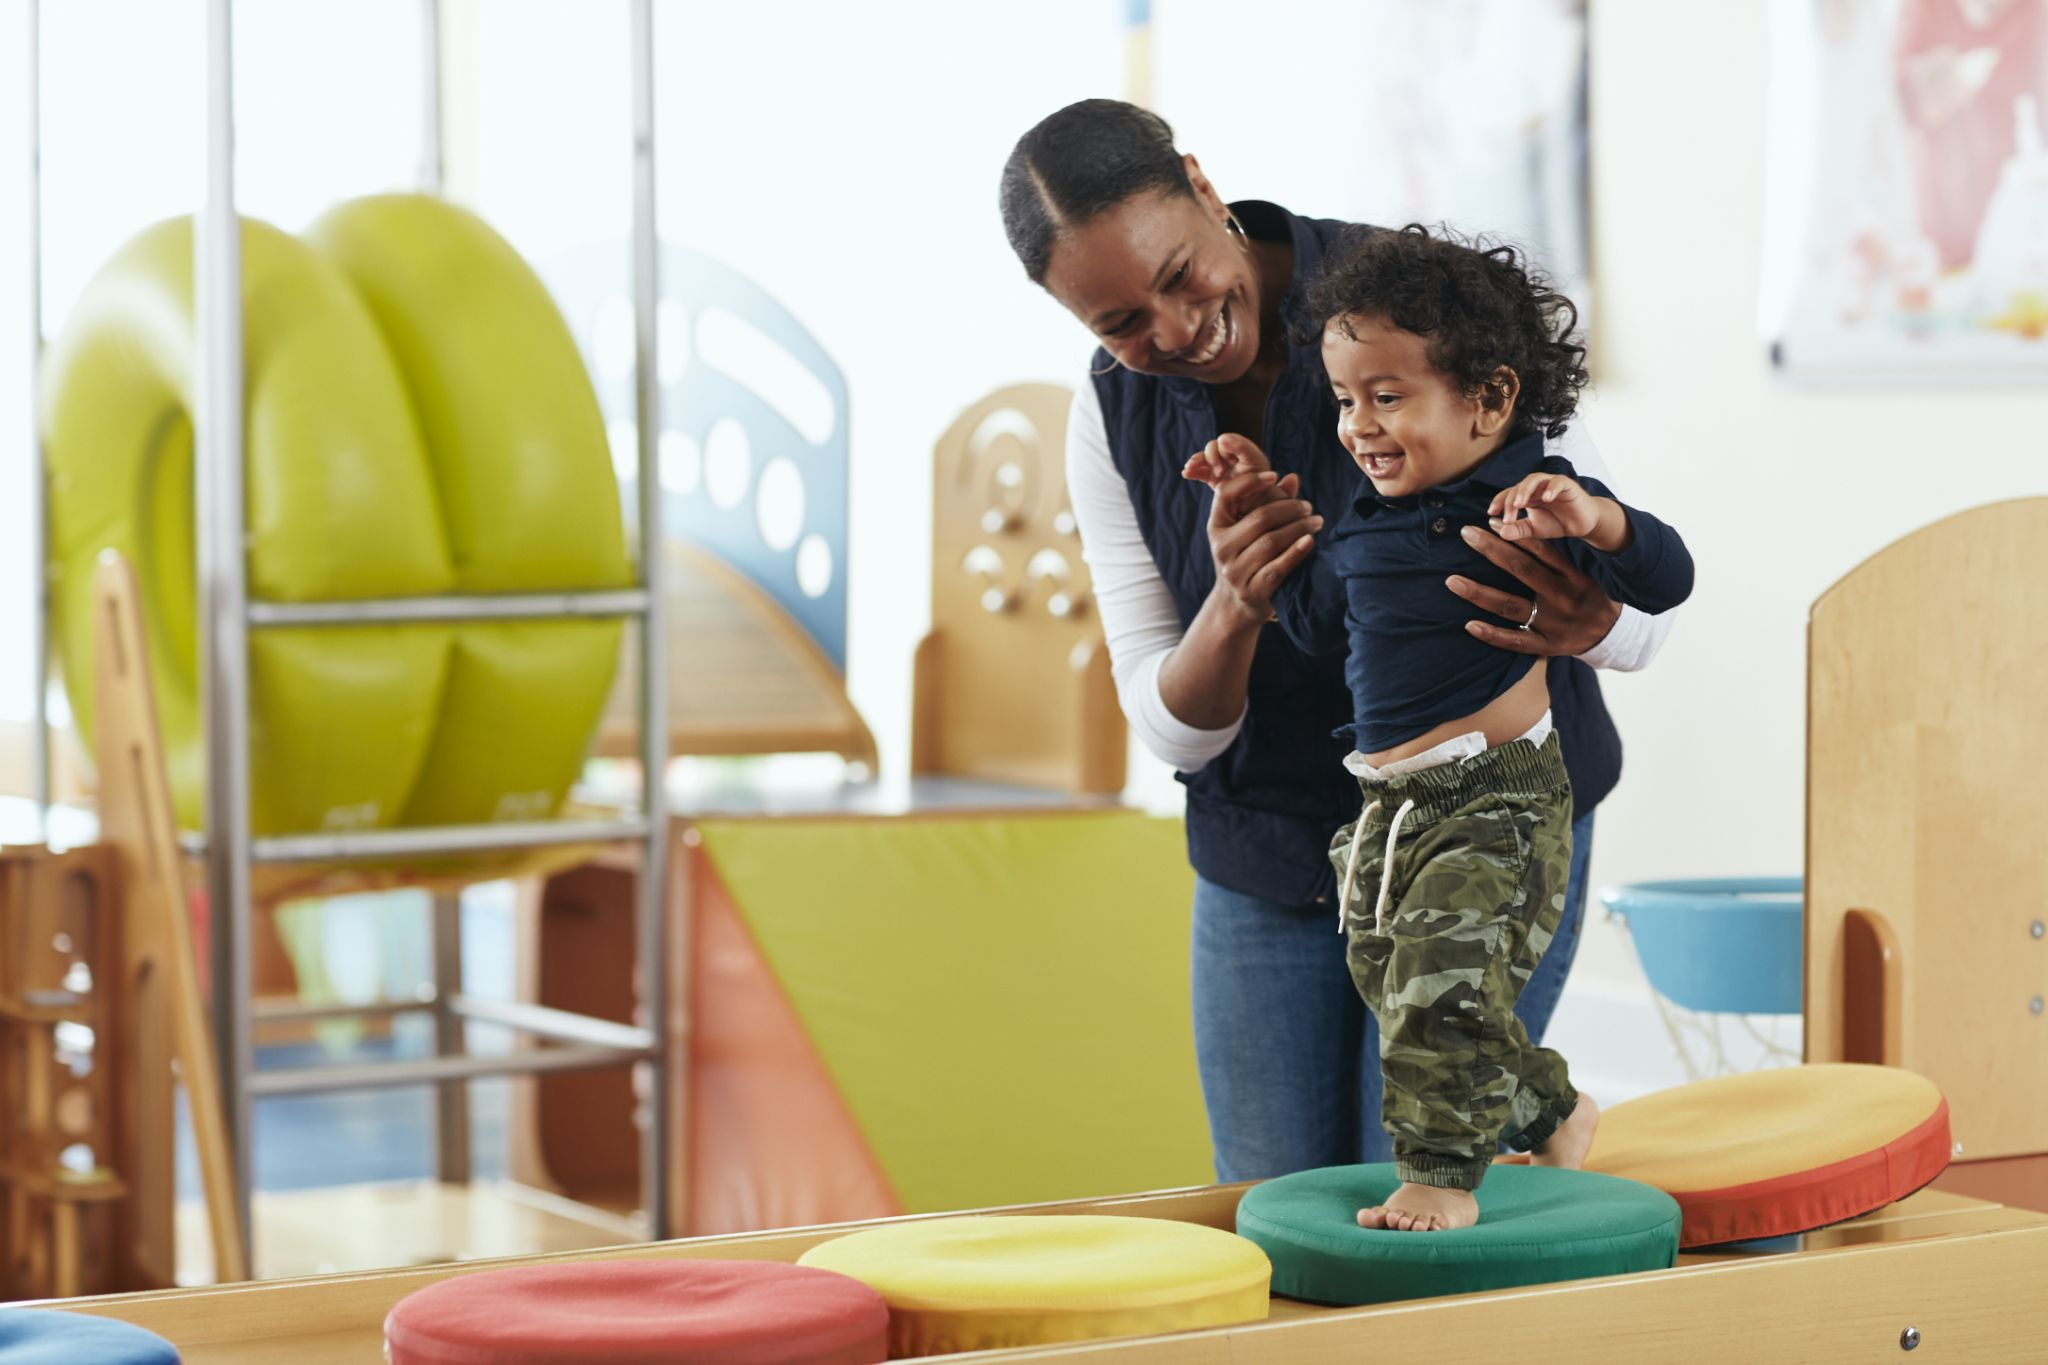 mother holding child on beam at Gymboree